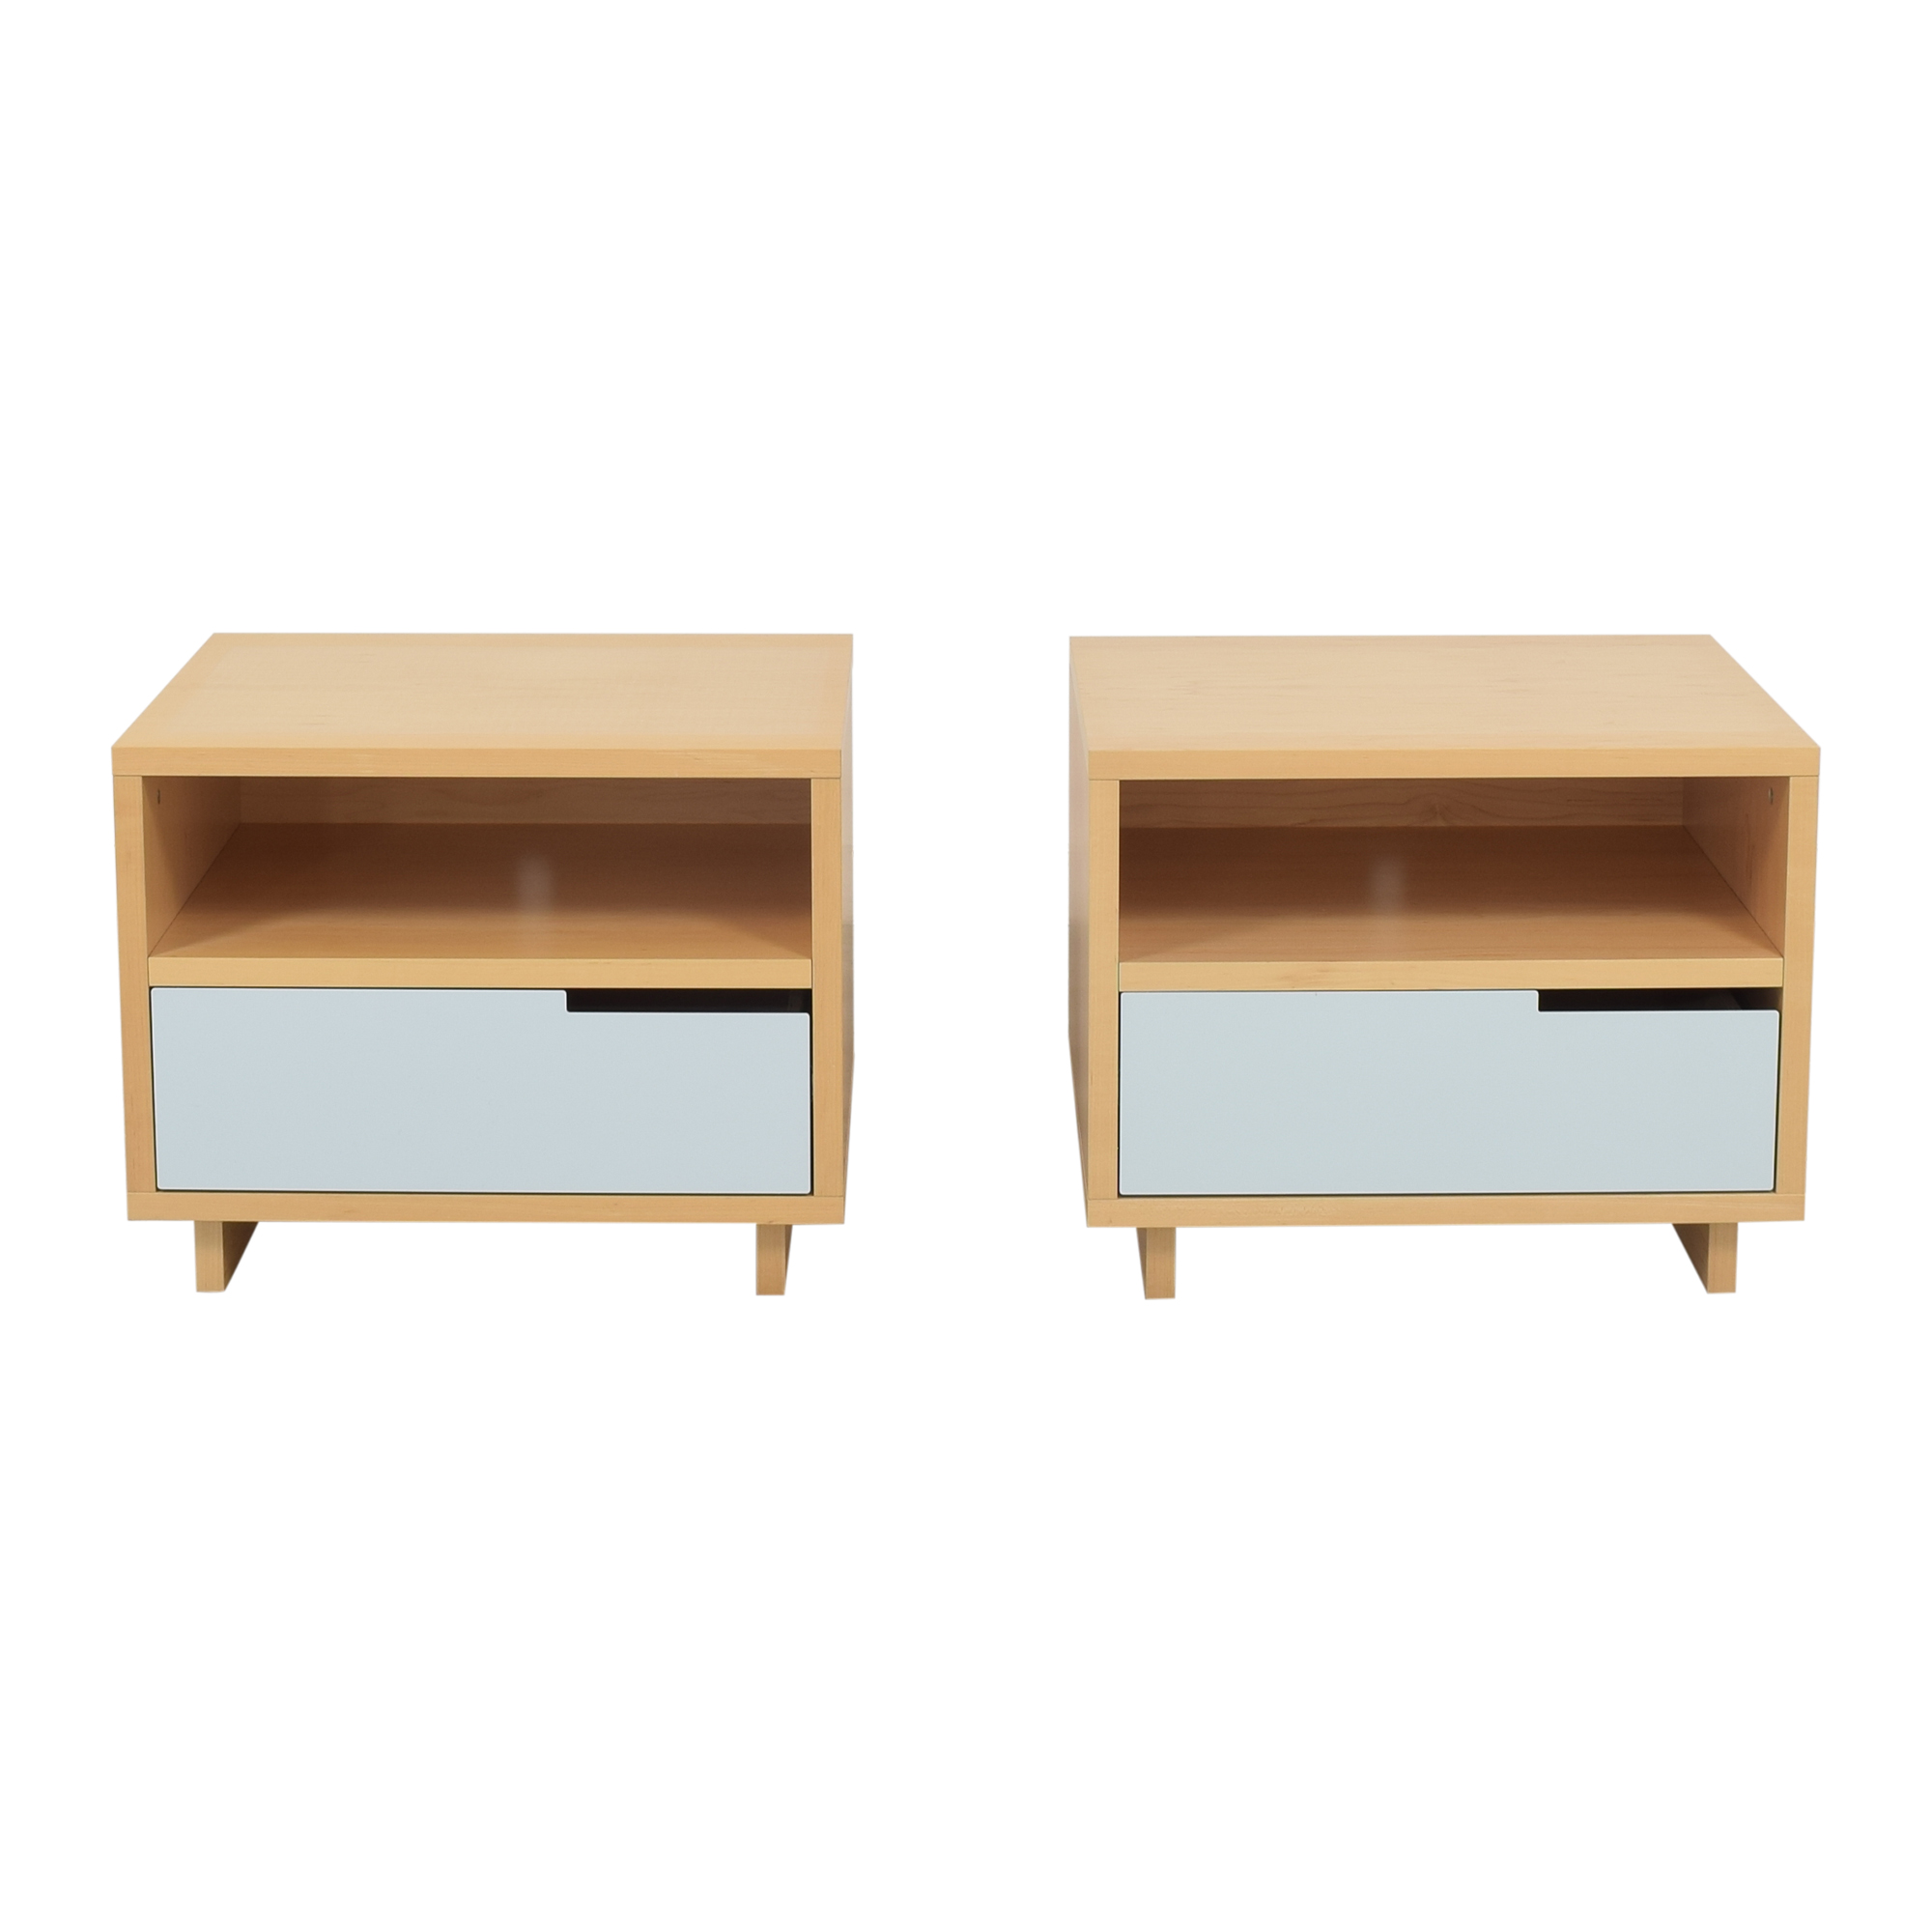 Blu Dot Blu Dot Modu-licious Bedside Tables for sale